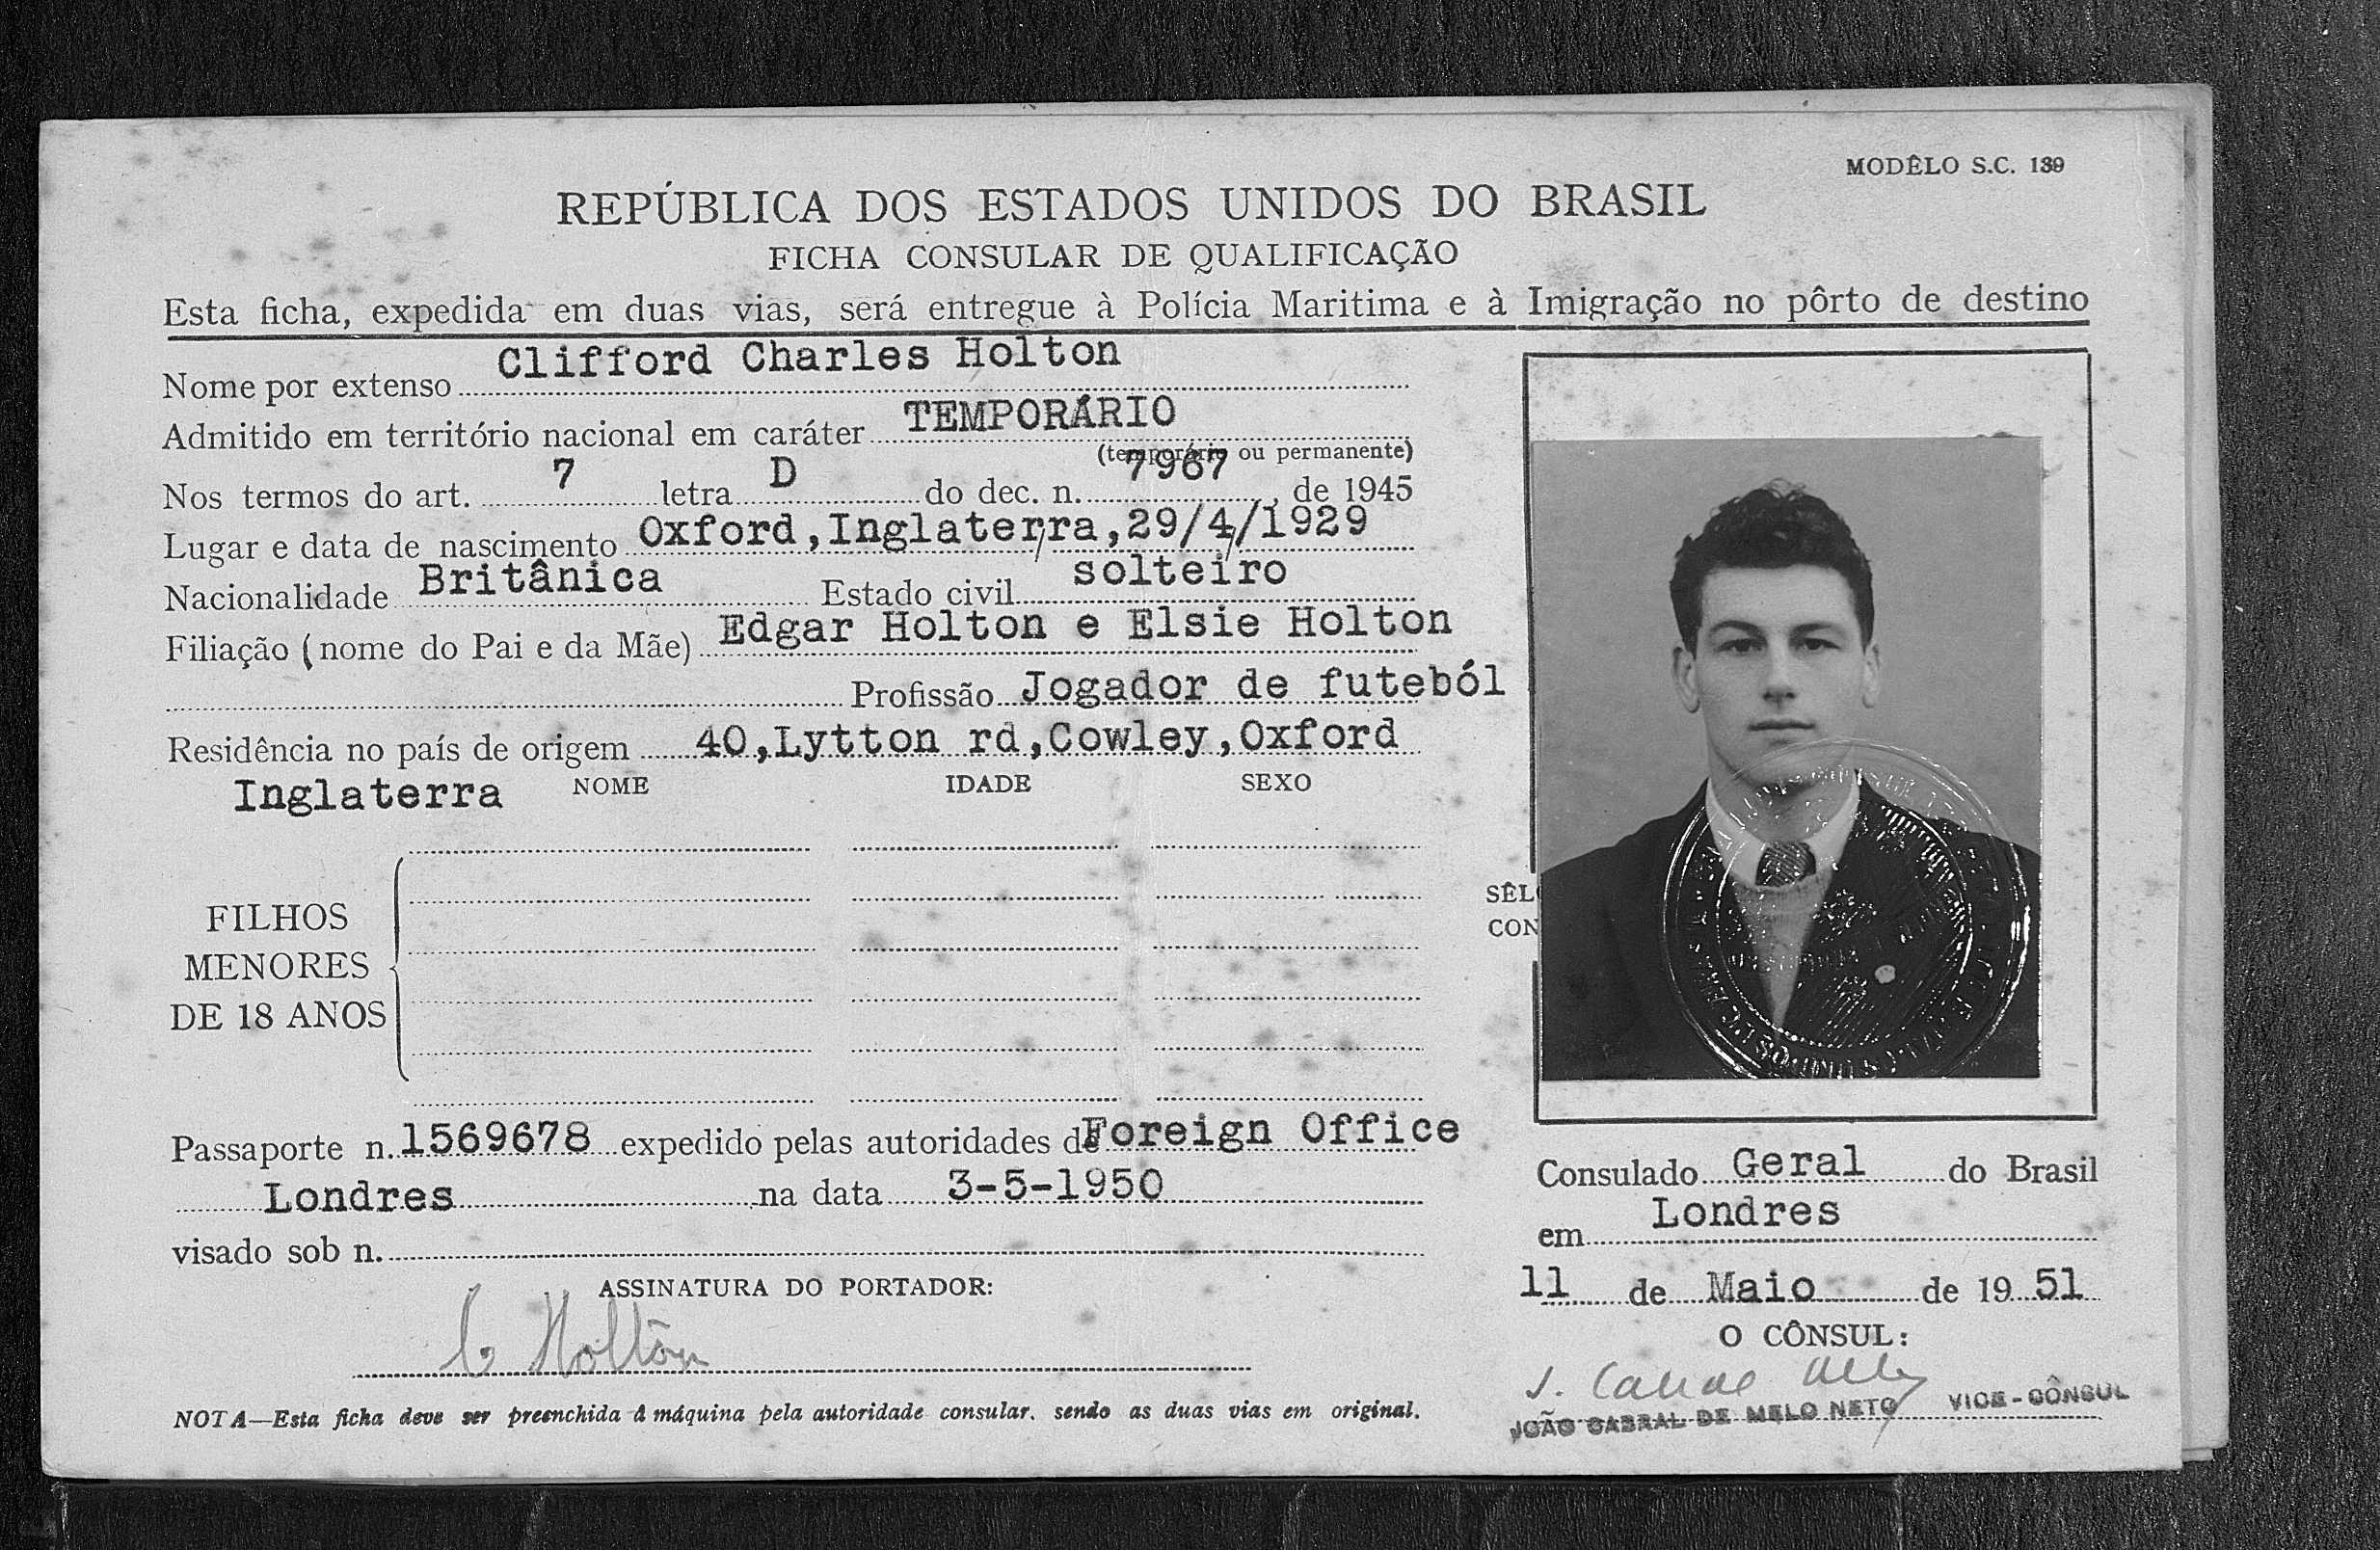 Arsenal's Cliff Holton's 1951 visa for Brazil